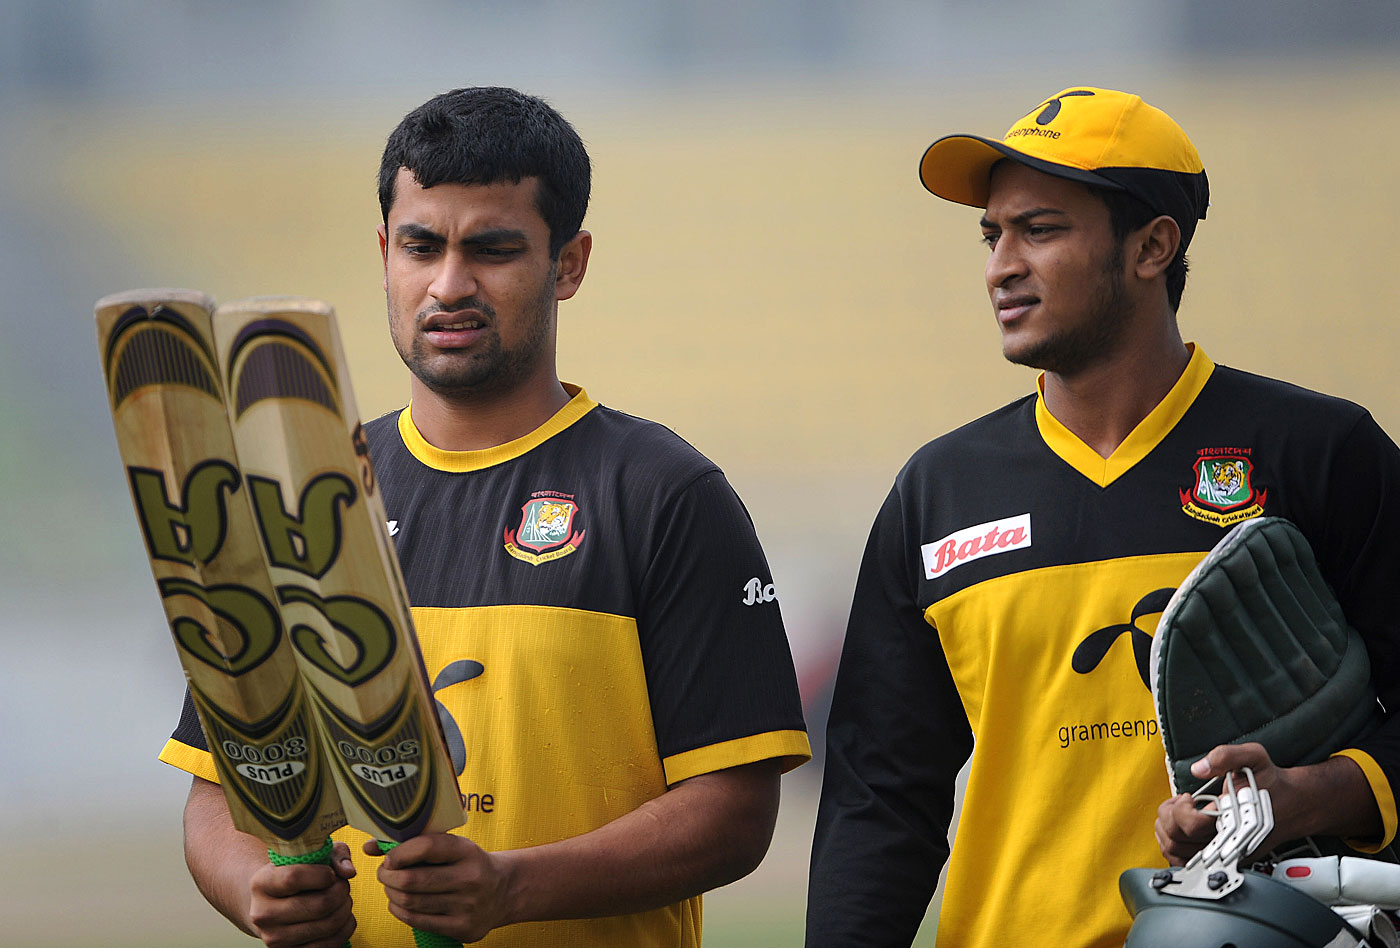 The A team: Tamim Iqbal (left) and Shakib Al Hasan have emerged as two of Bangladesh's more influential players in the last decade